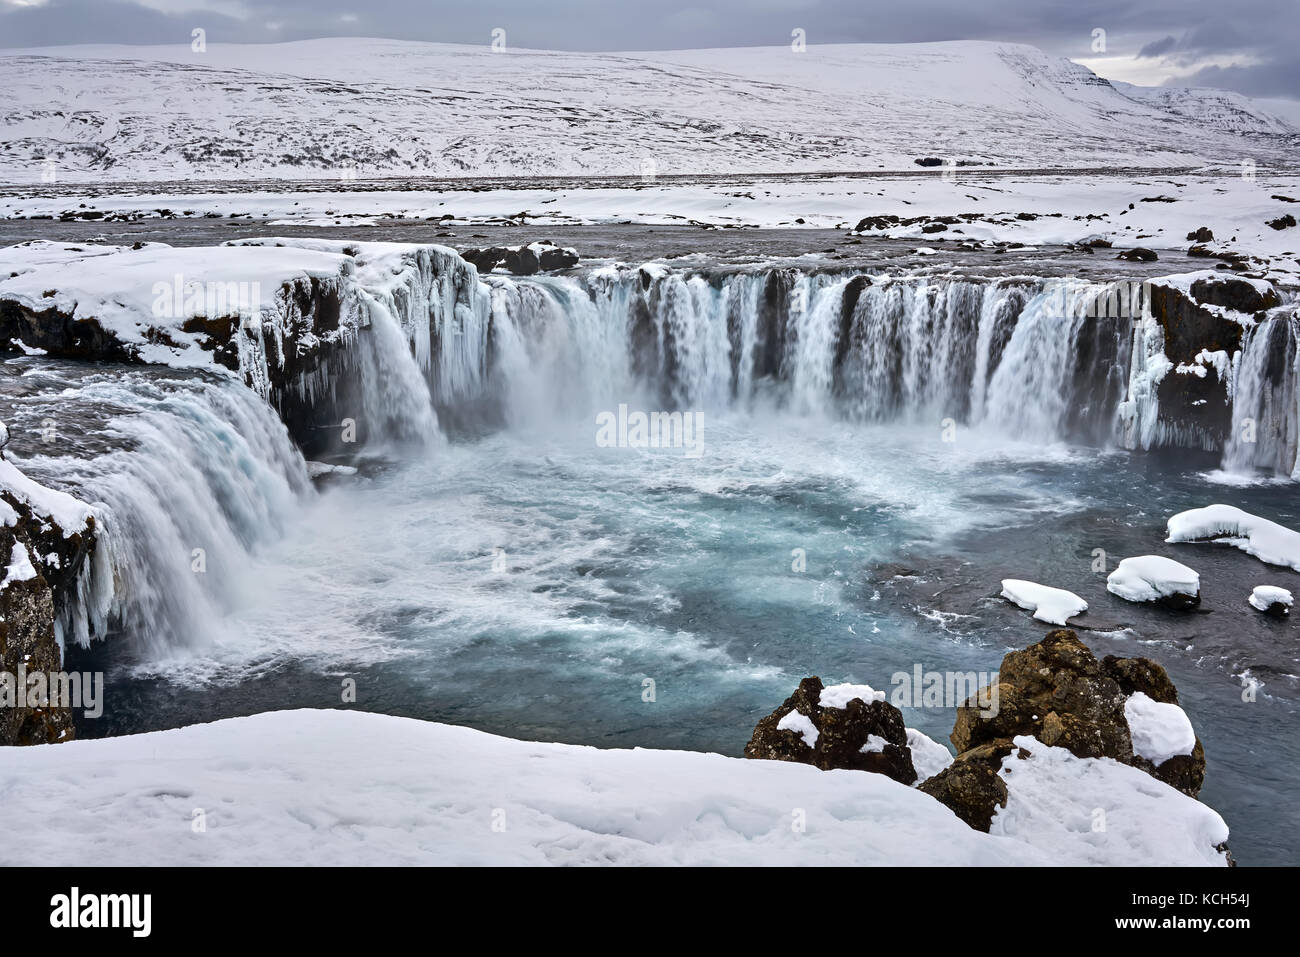 Icelandic landscape with waterfall Stock Photo